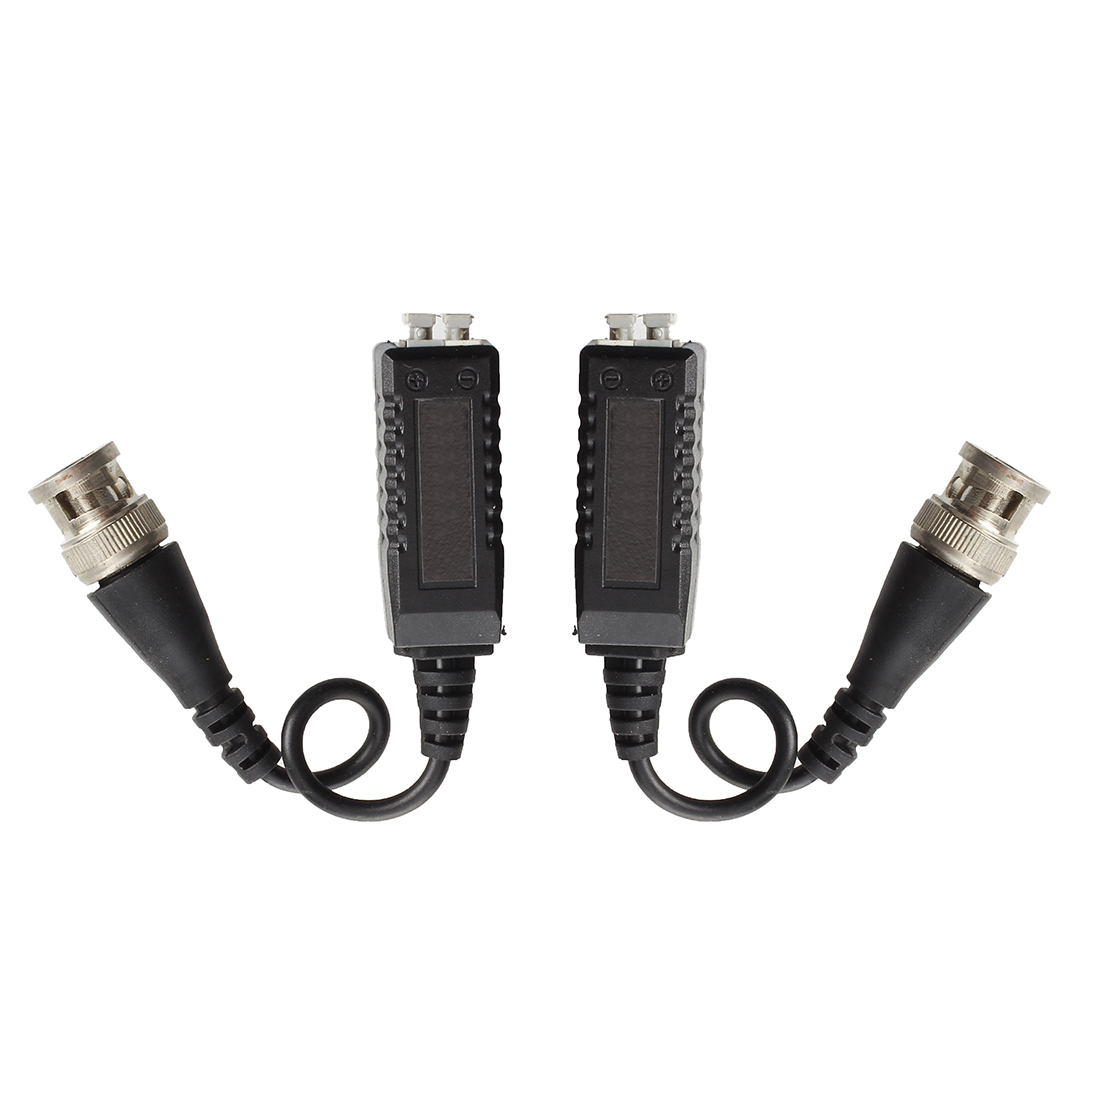 MOOL  2x Video Balun BNC Cat5 Passive transmitter Two Wire for CCTV / Security CameraMOOL  2x Video Balun BNC Cat5 Passive transmitter Two Wire for CCTV / Security Camera